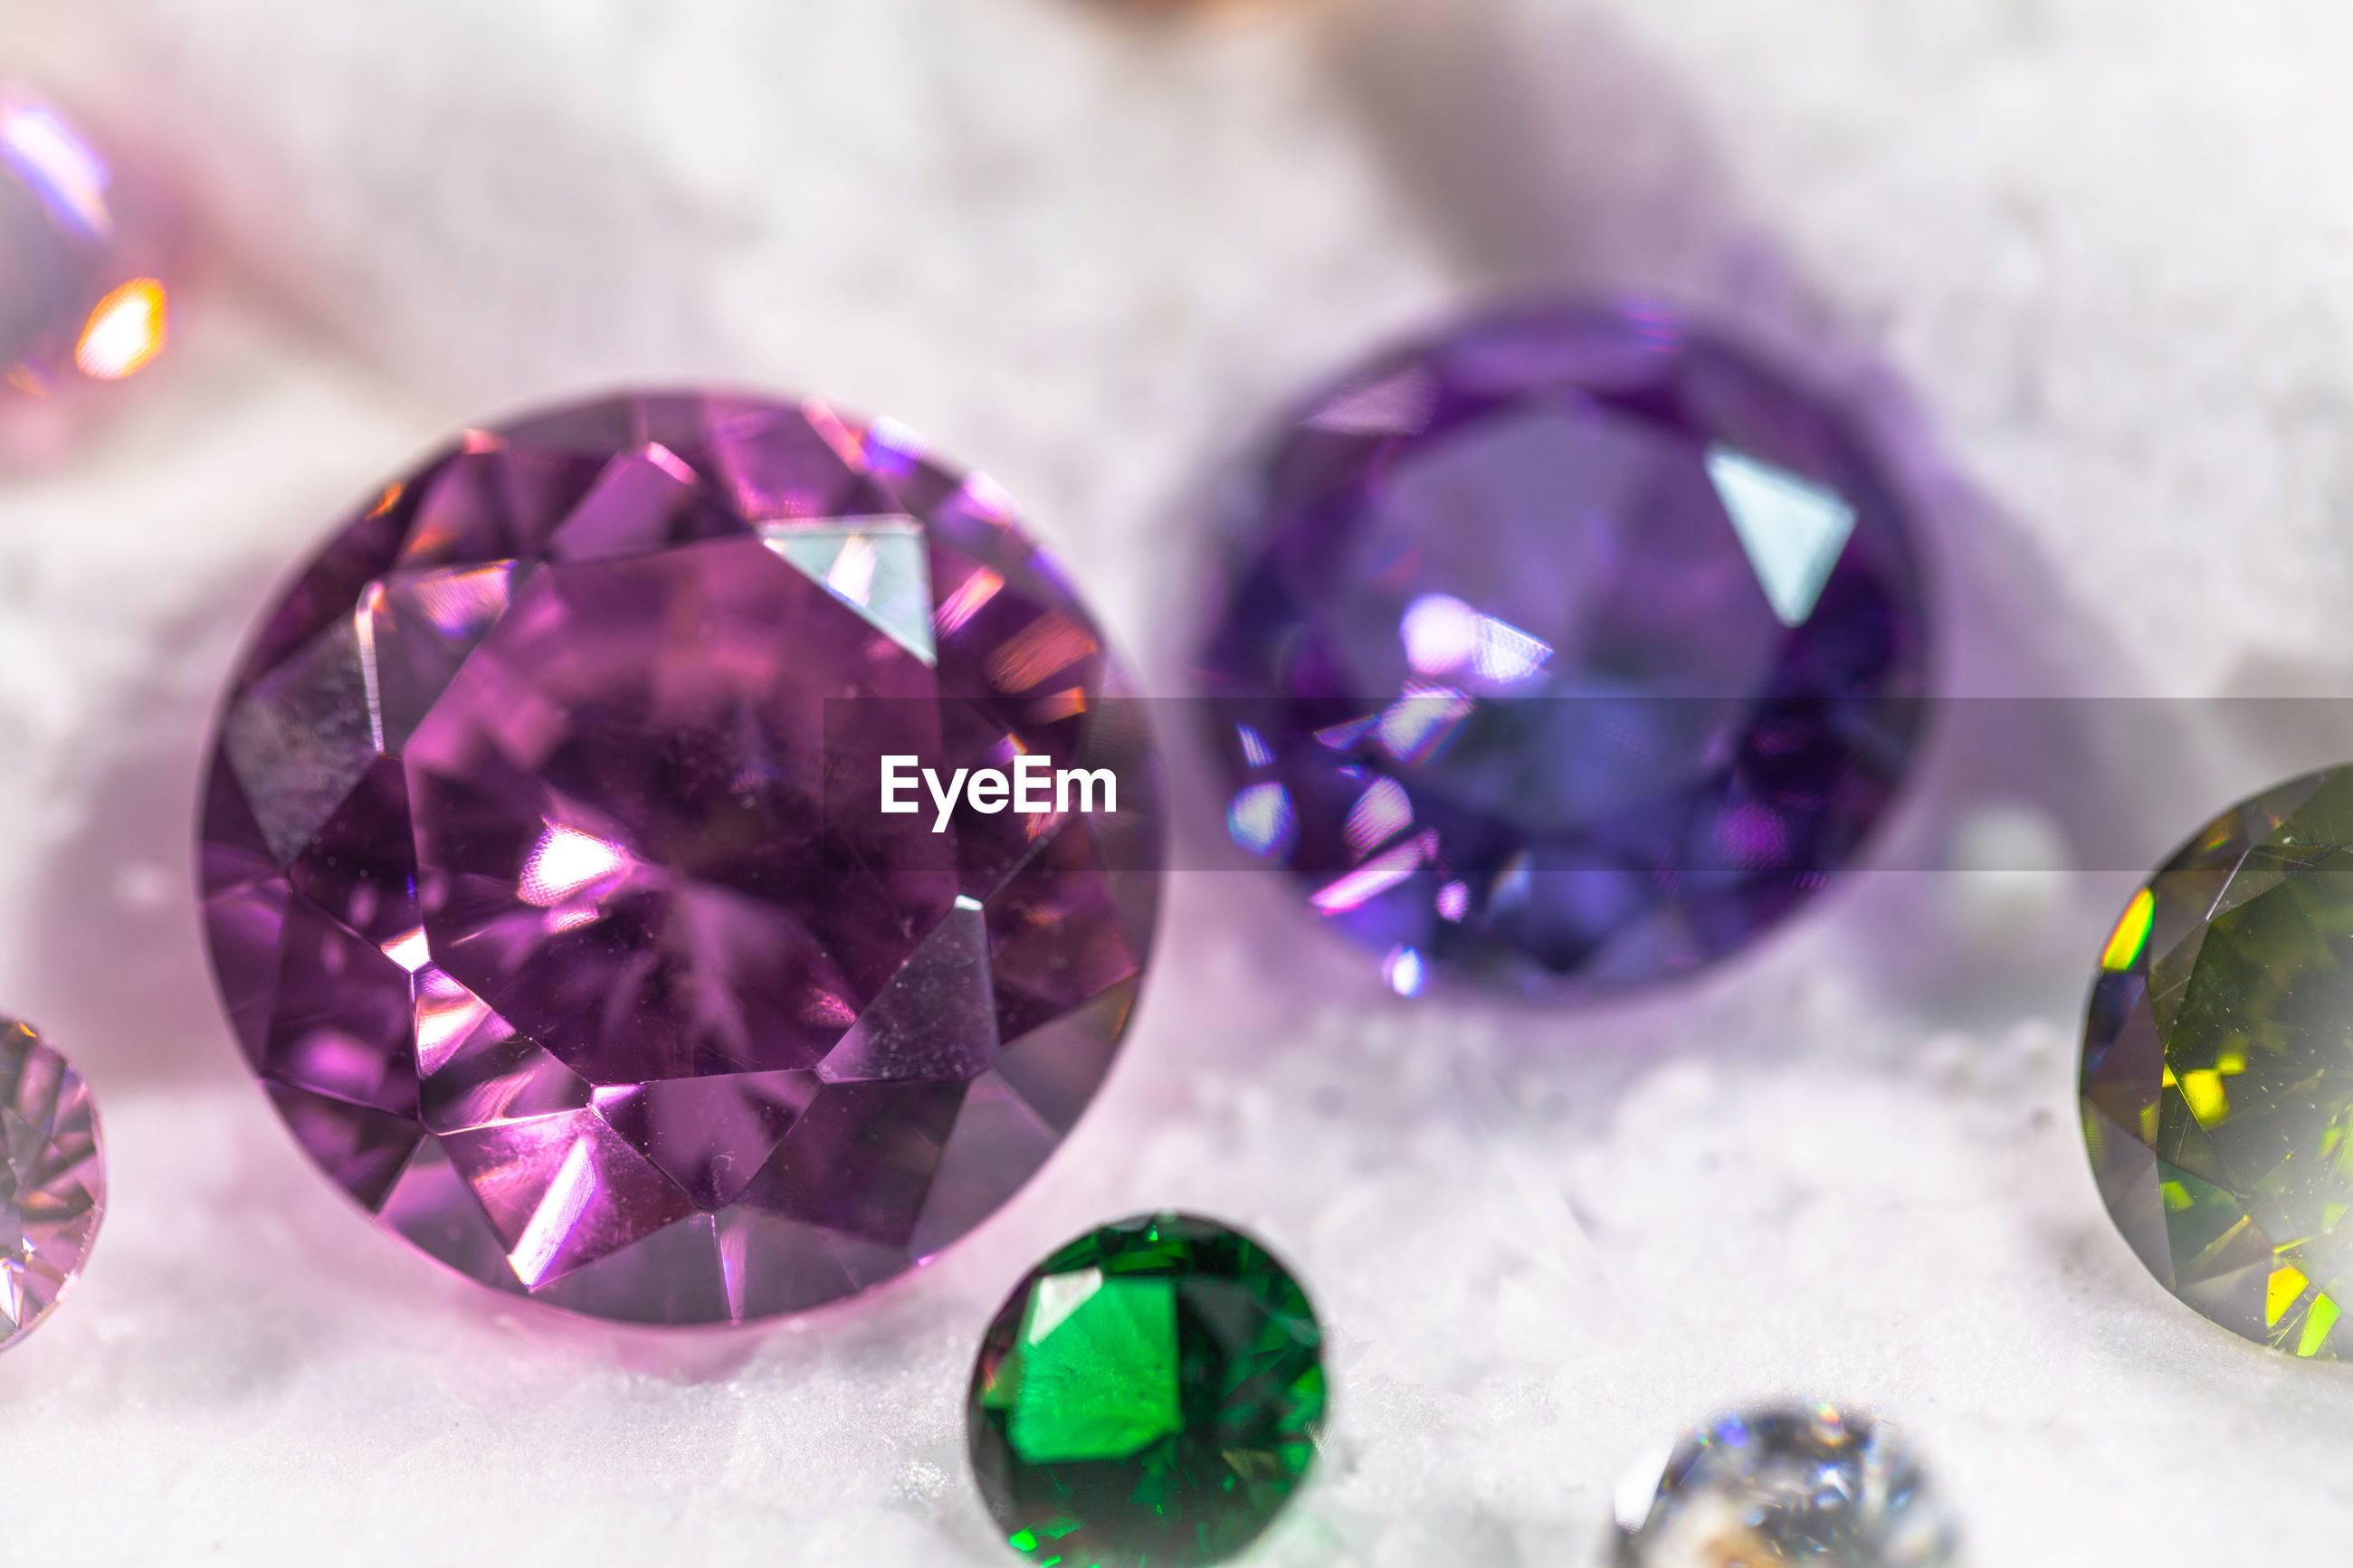 Close-up of multi colored gemstones on table